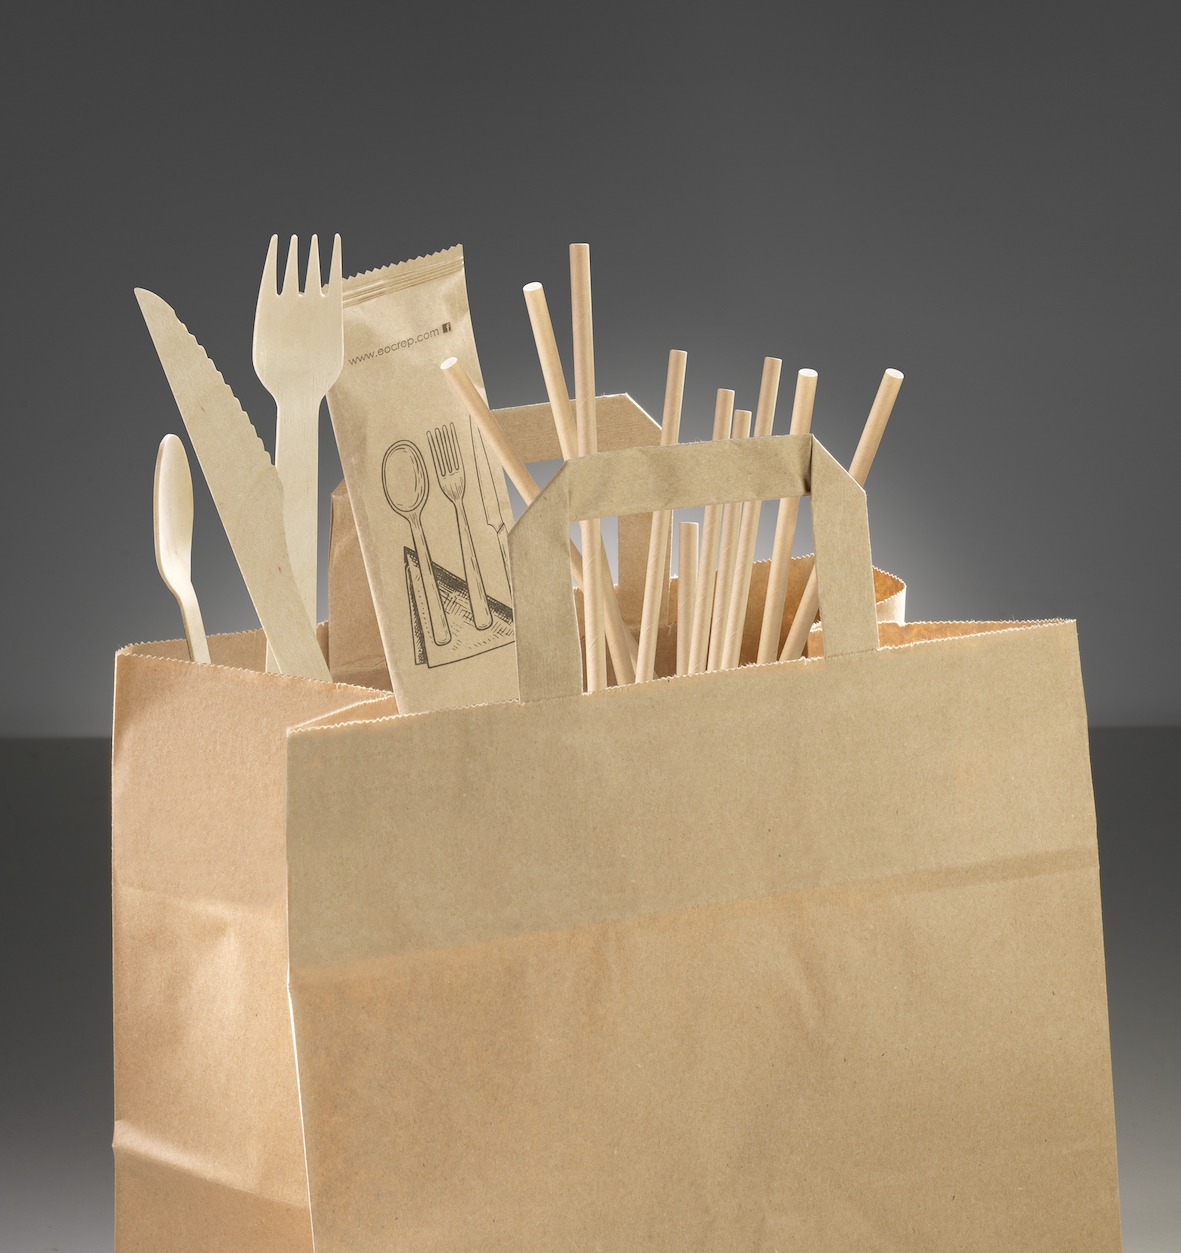 soustainable and compostable straws, cutlery and paper bag